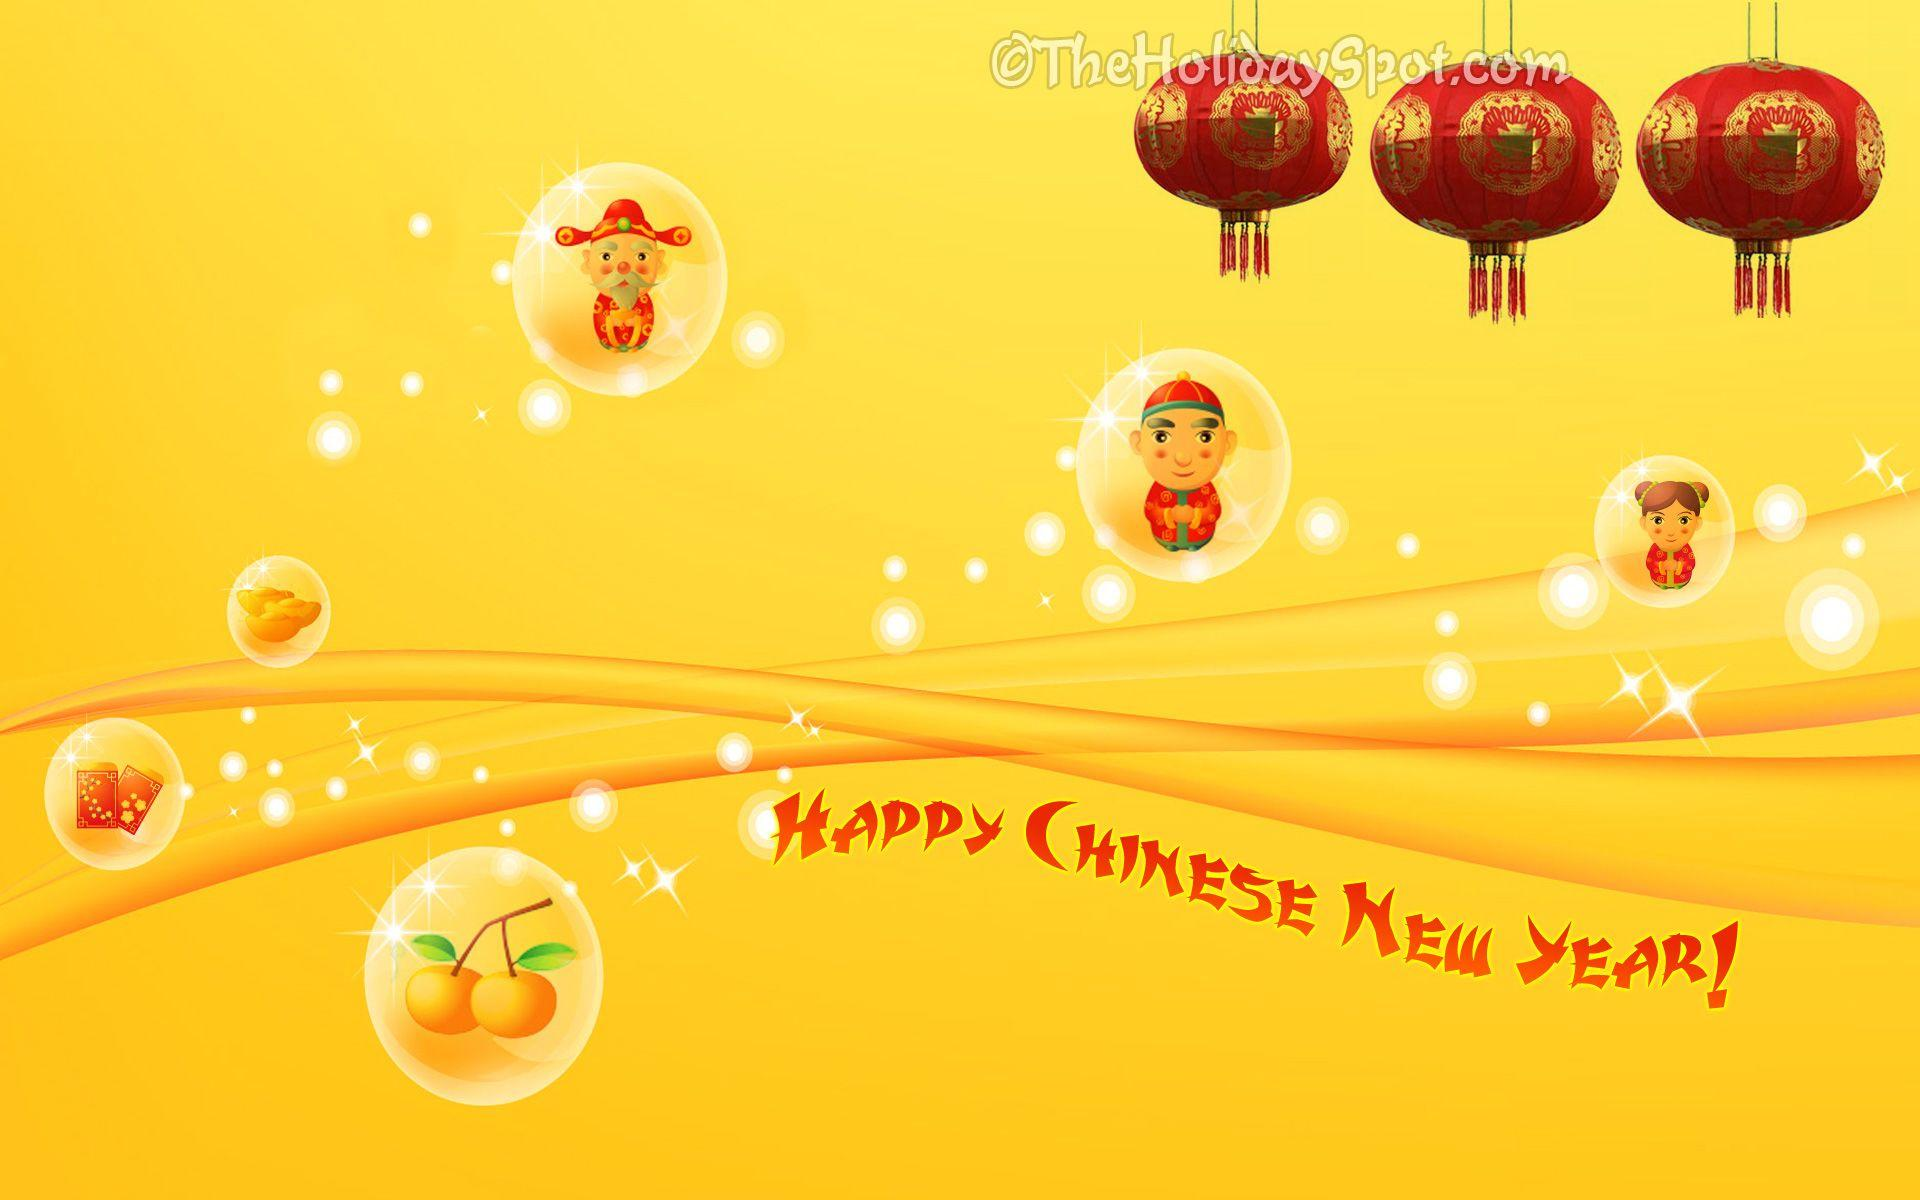 Chinese New Year wallpapers at TheHolidaySpot